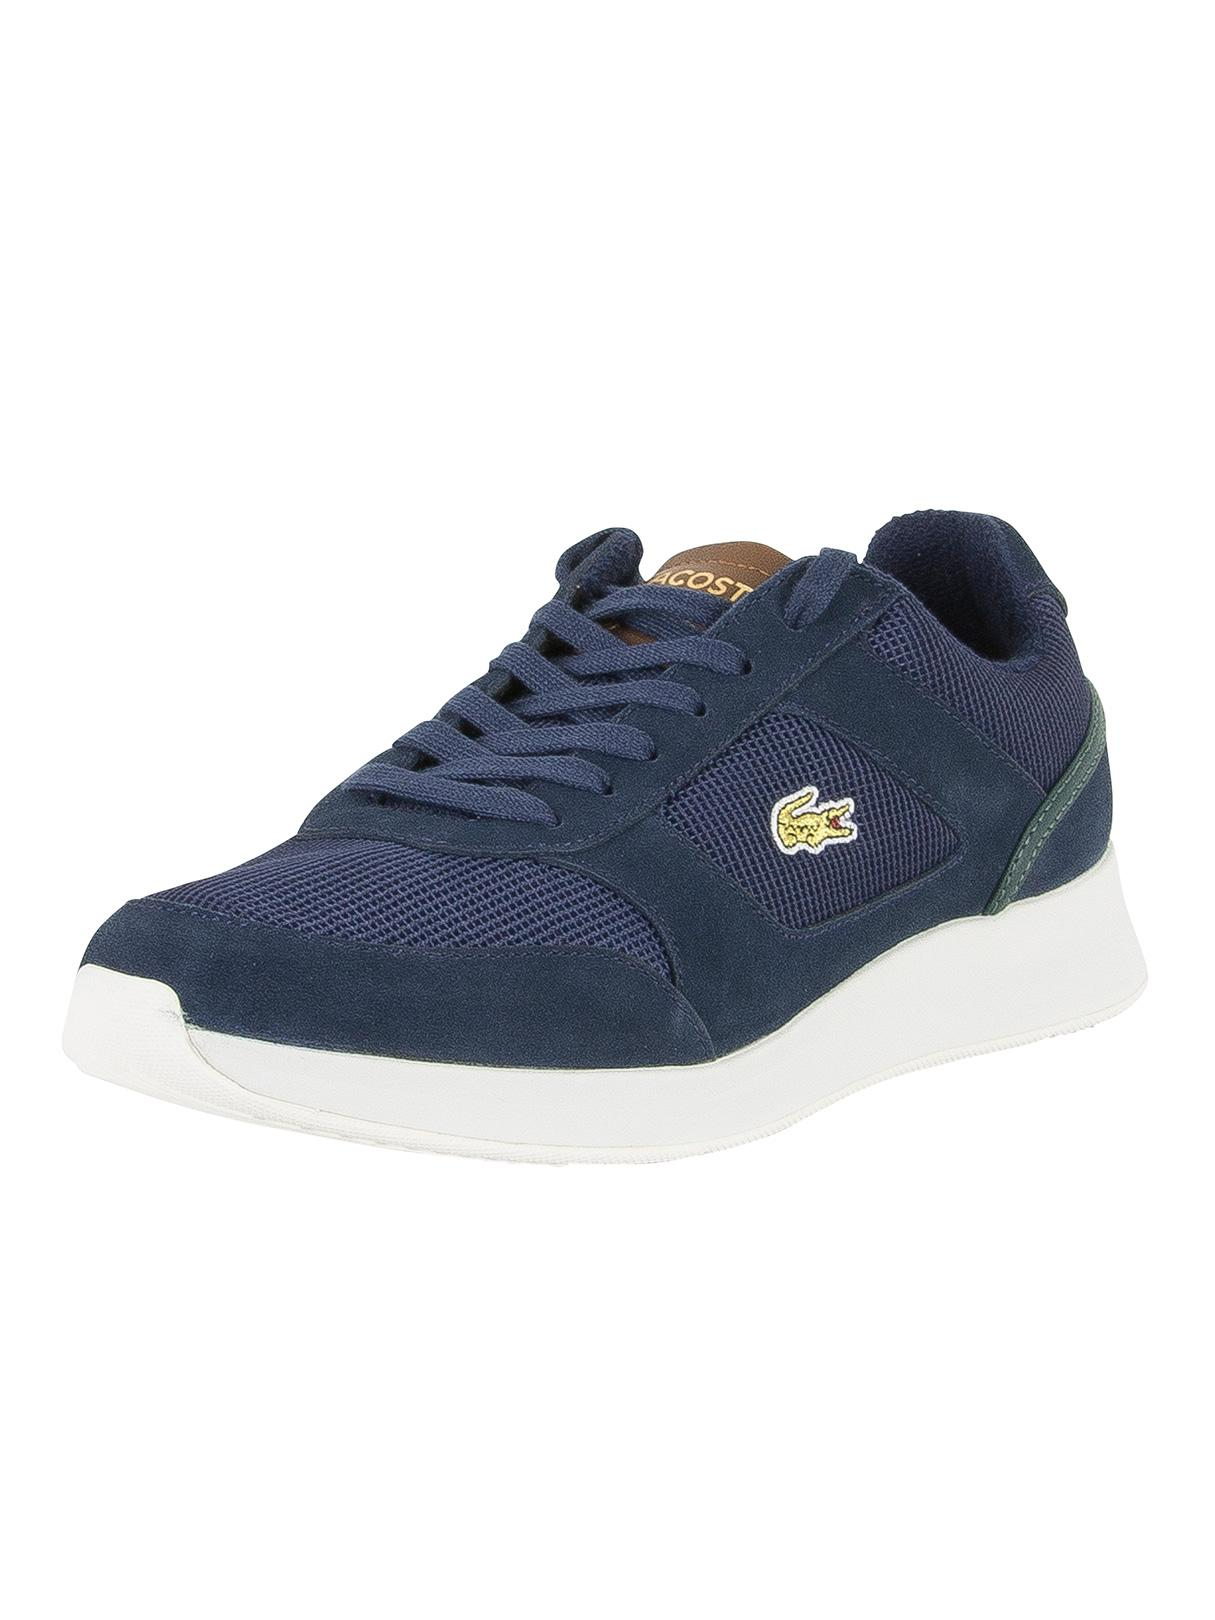 a15e81e38249 Lyst - Lacoste Navy brown Joggeur 317 4 Spm Trainers in Blue for Men